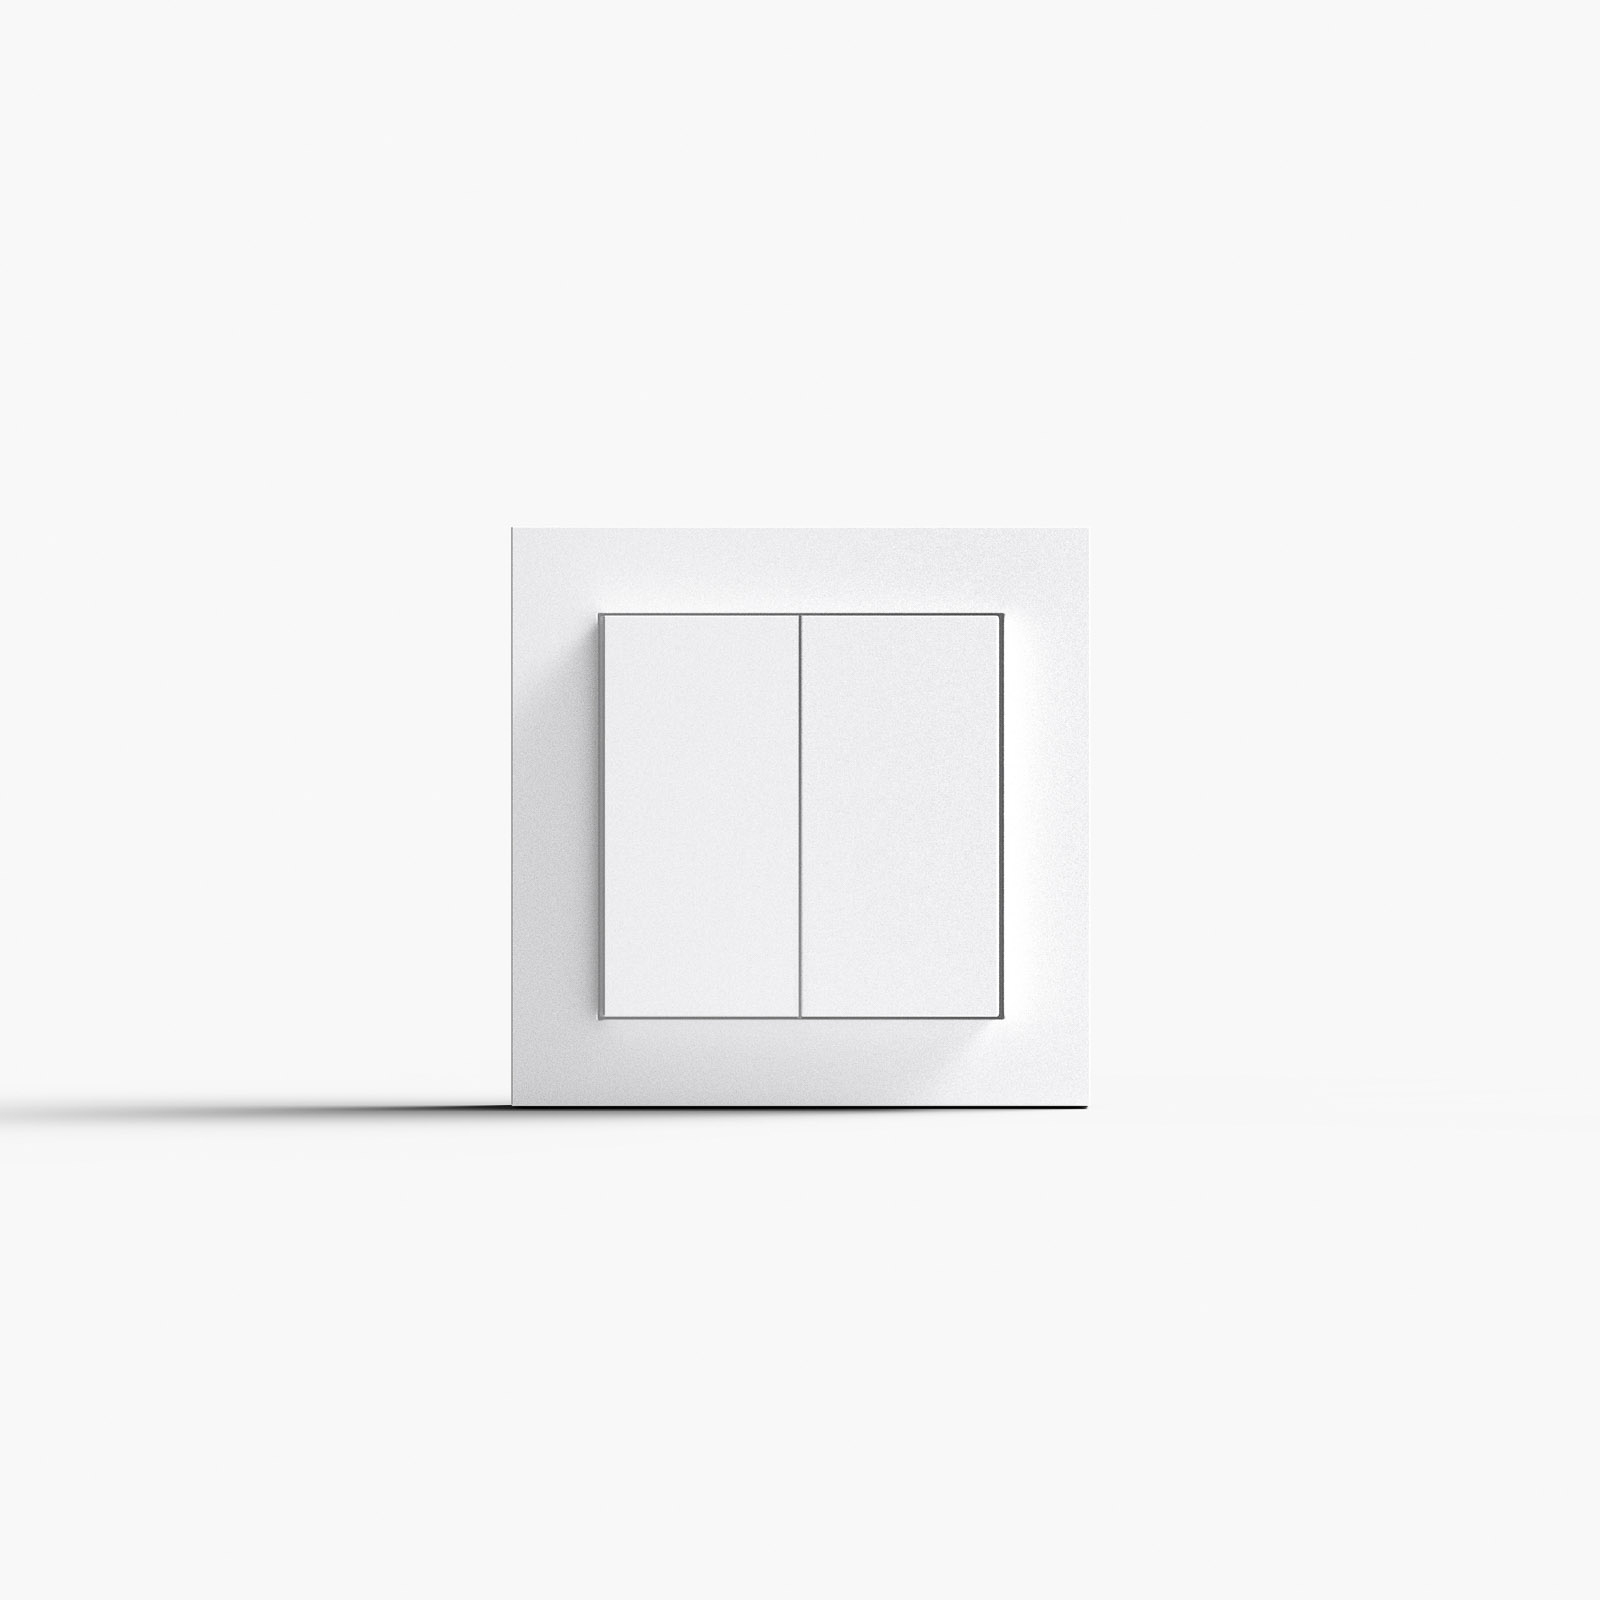 Senic Smart Switch Philips Hue, 3-er, weiß matt